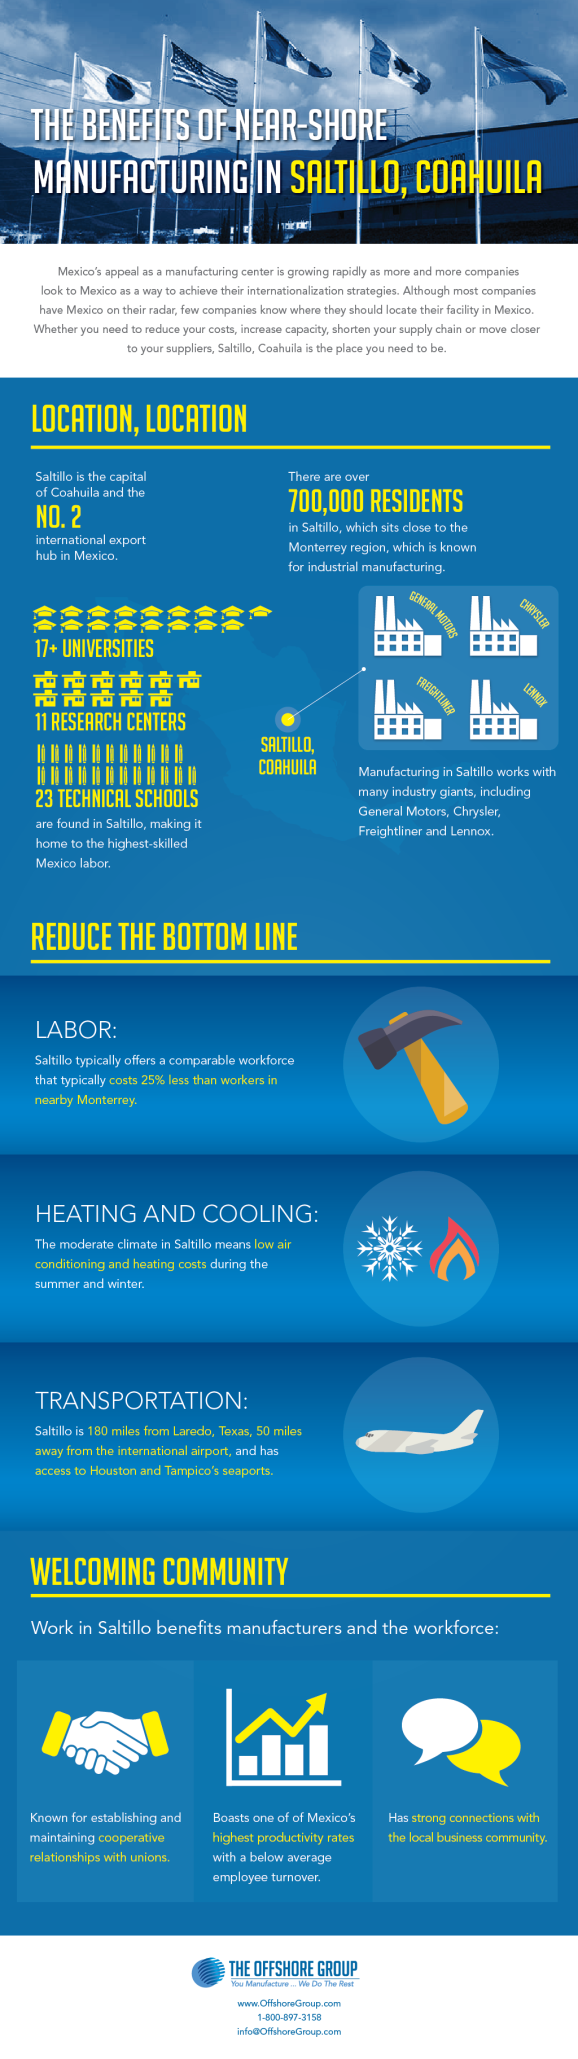 Infographic The Benefits of Near-Shore Manufacturing in Saltillo, Coahuila including location, labor, etc